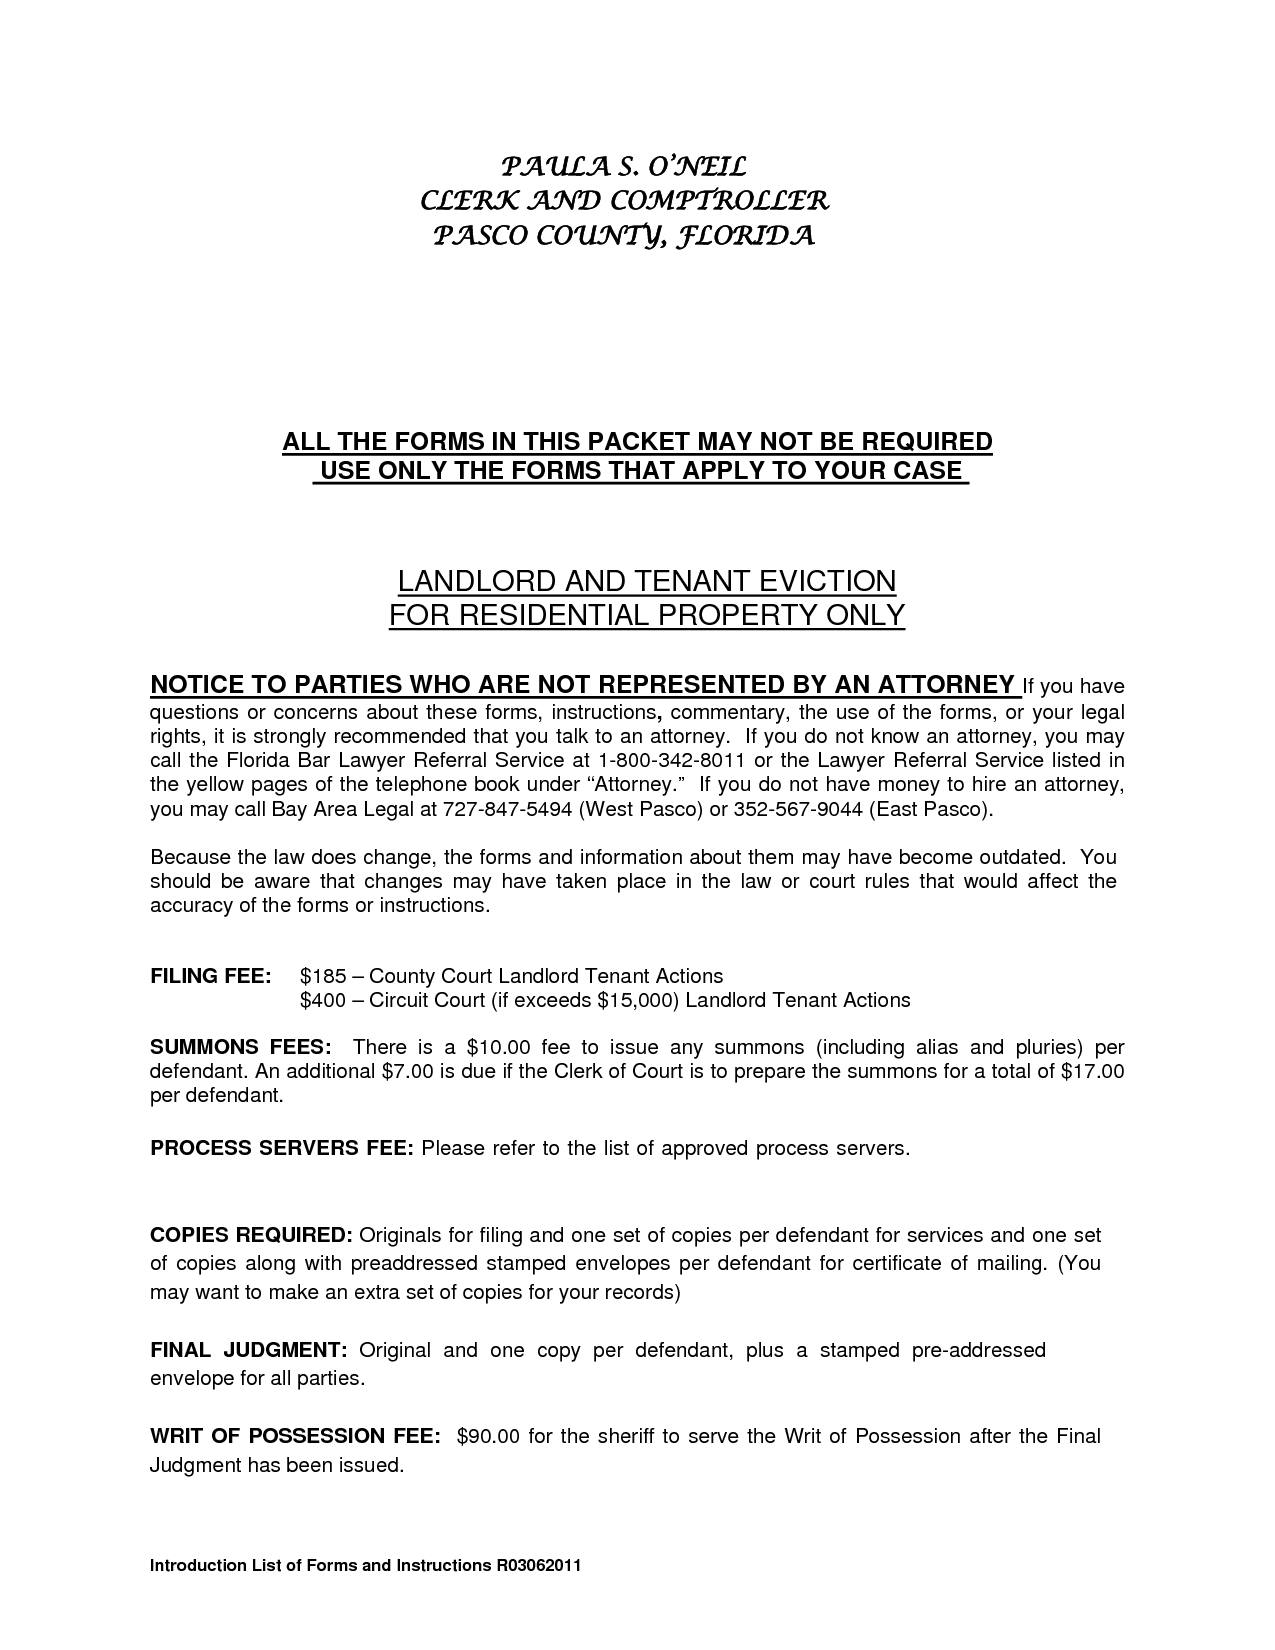 Residential Landlord Tenant Eviction Notice Form by ere72906 – Tenant Eviction Notice Form